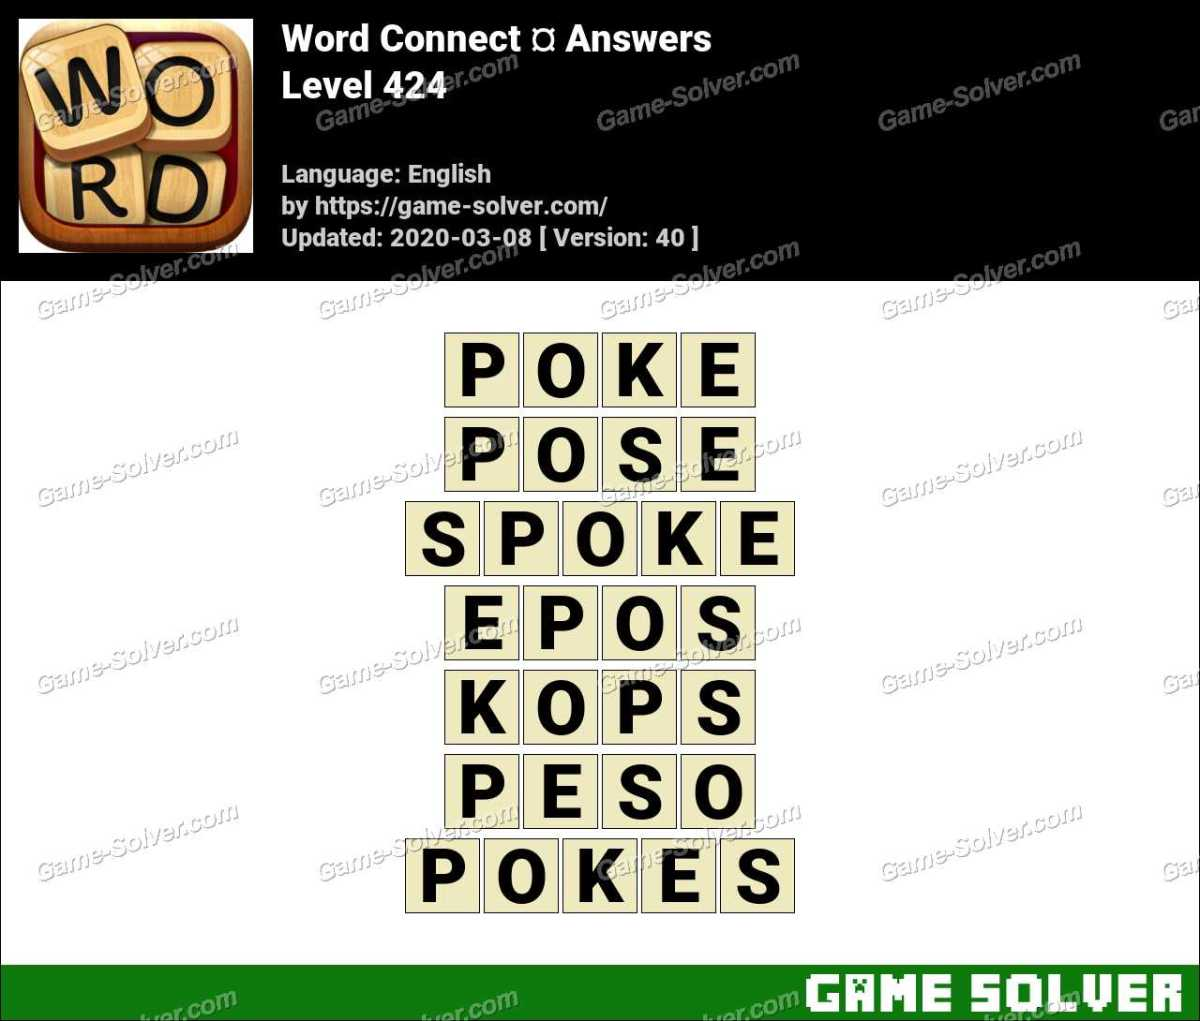 Word Connect Level 424 Answers